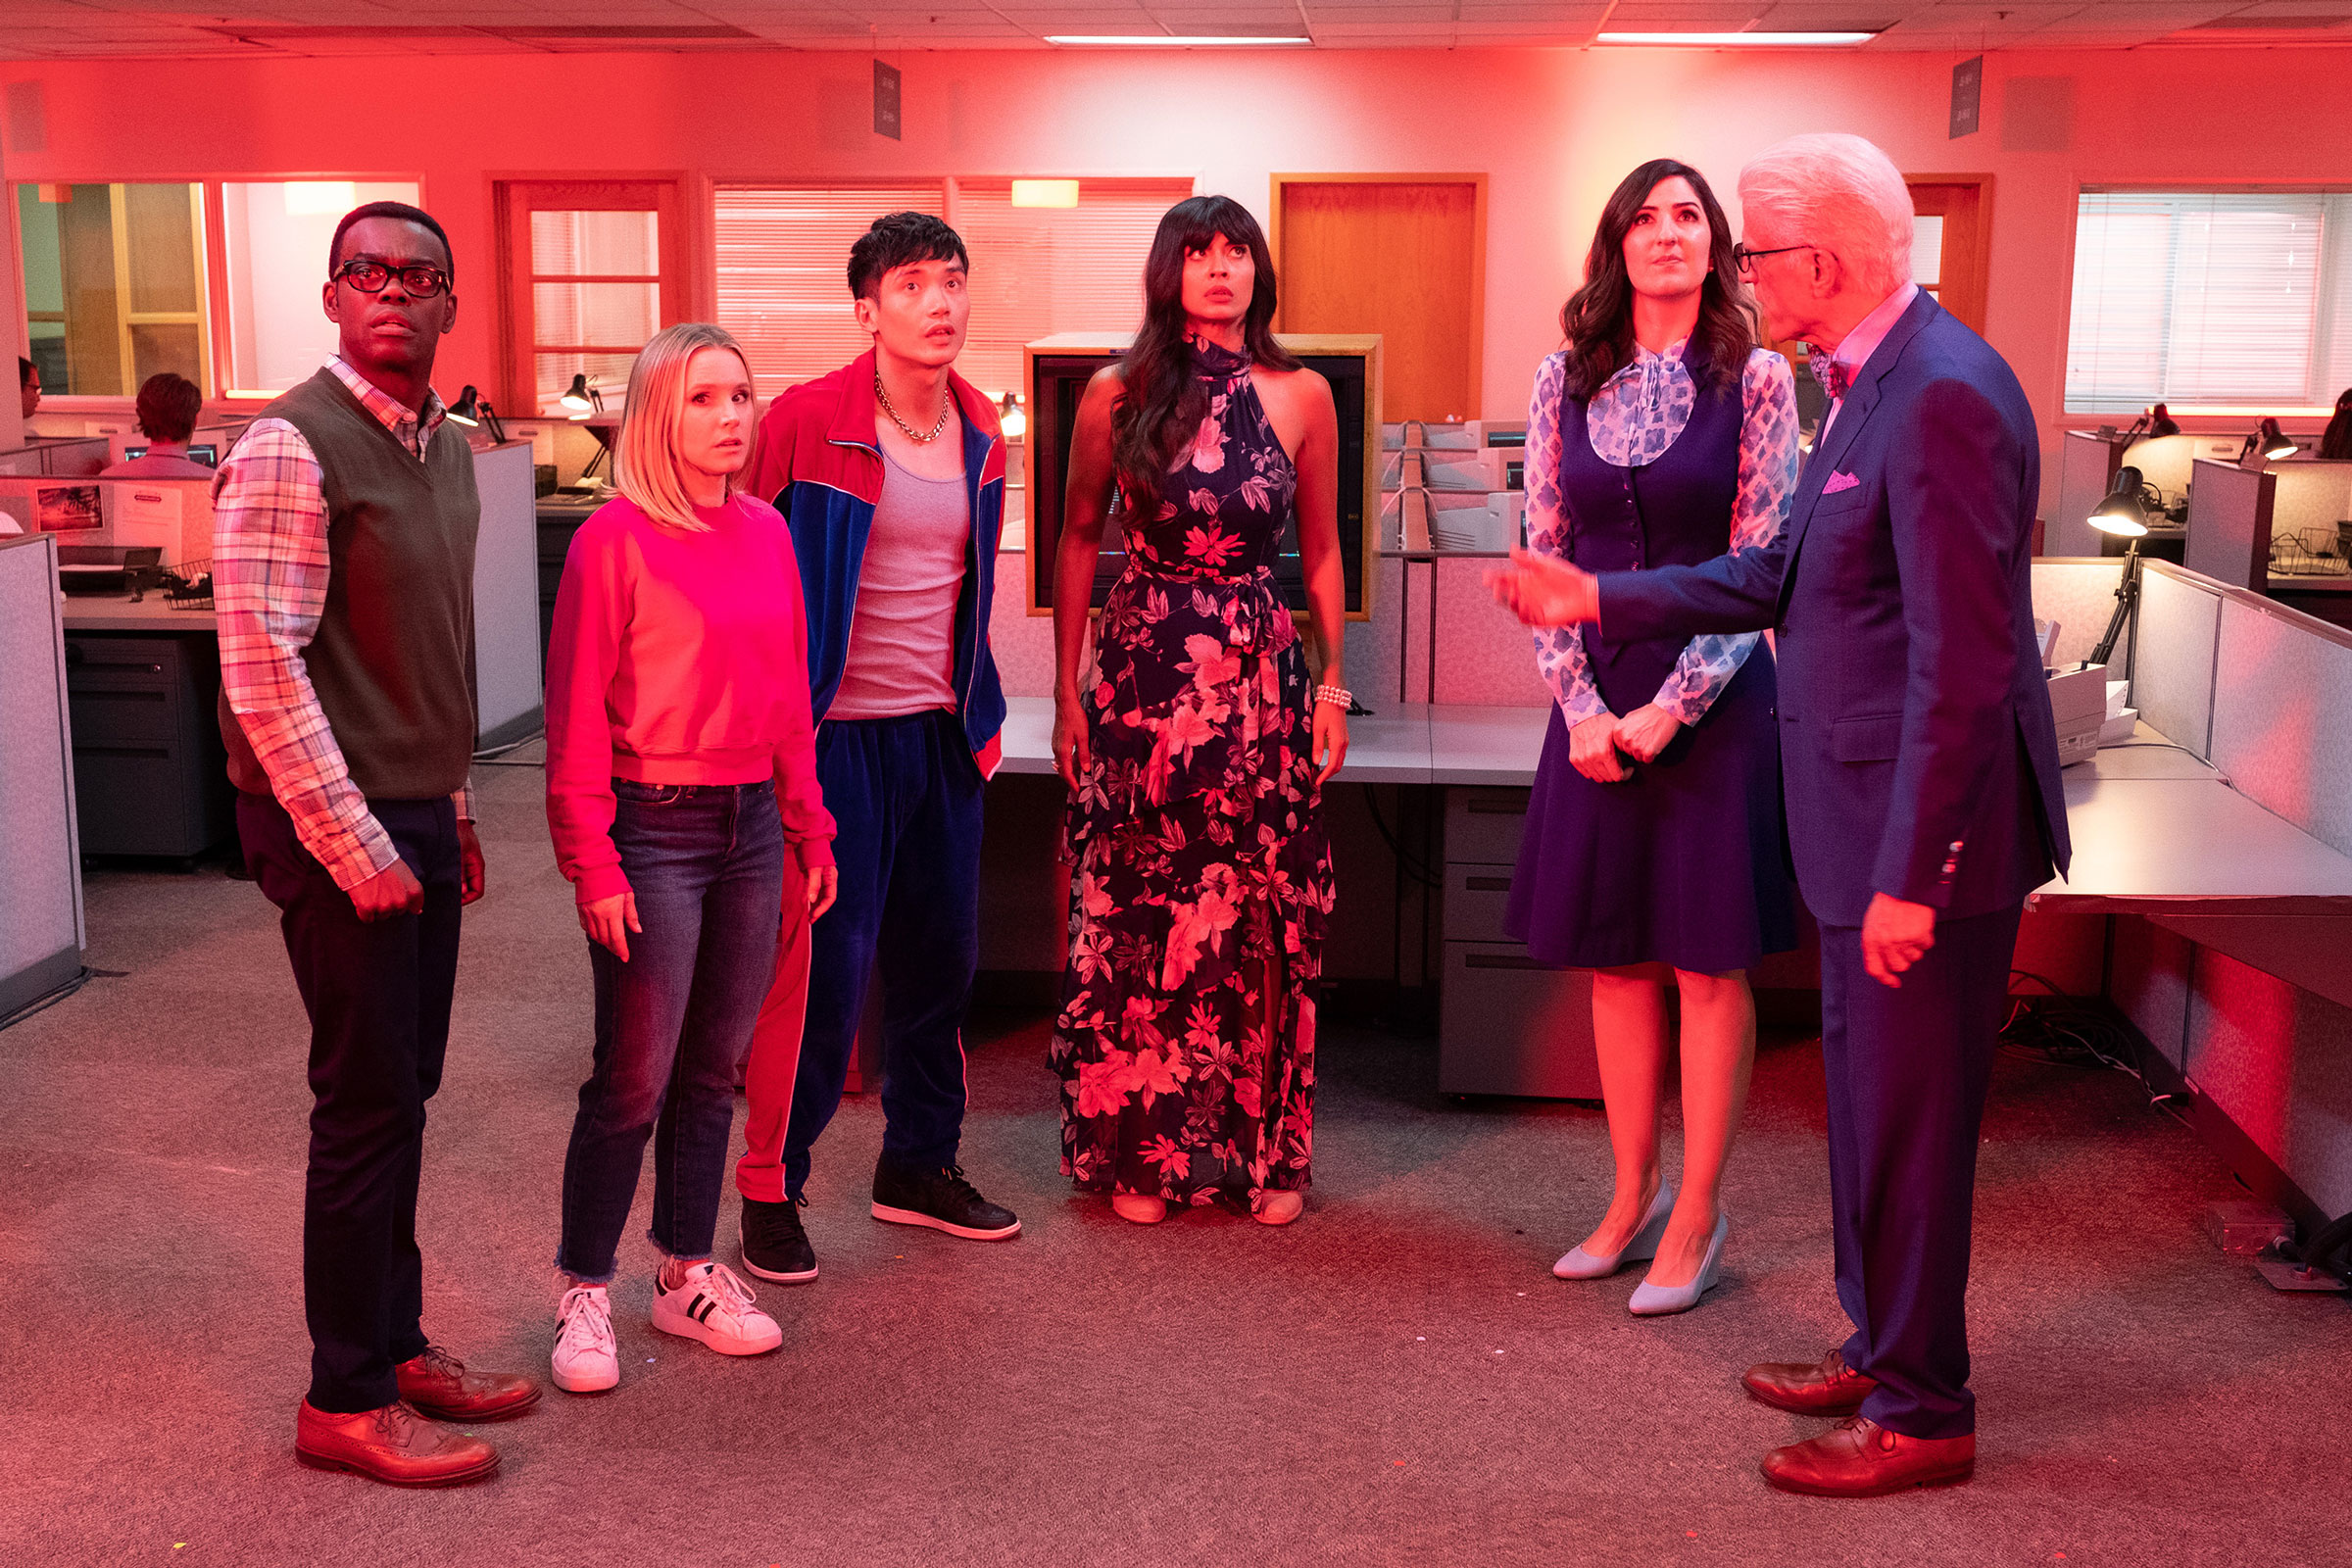 The 'Good Place' Cast Tells All